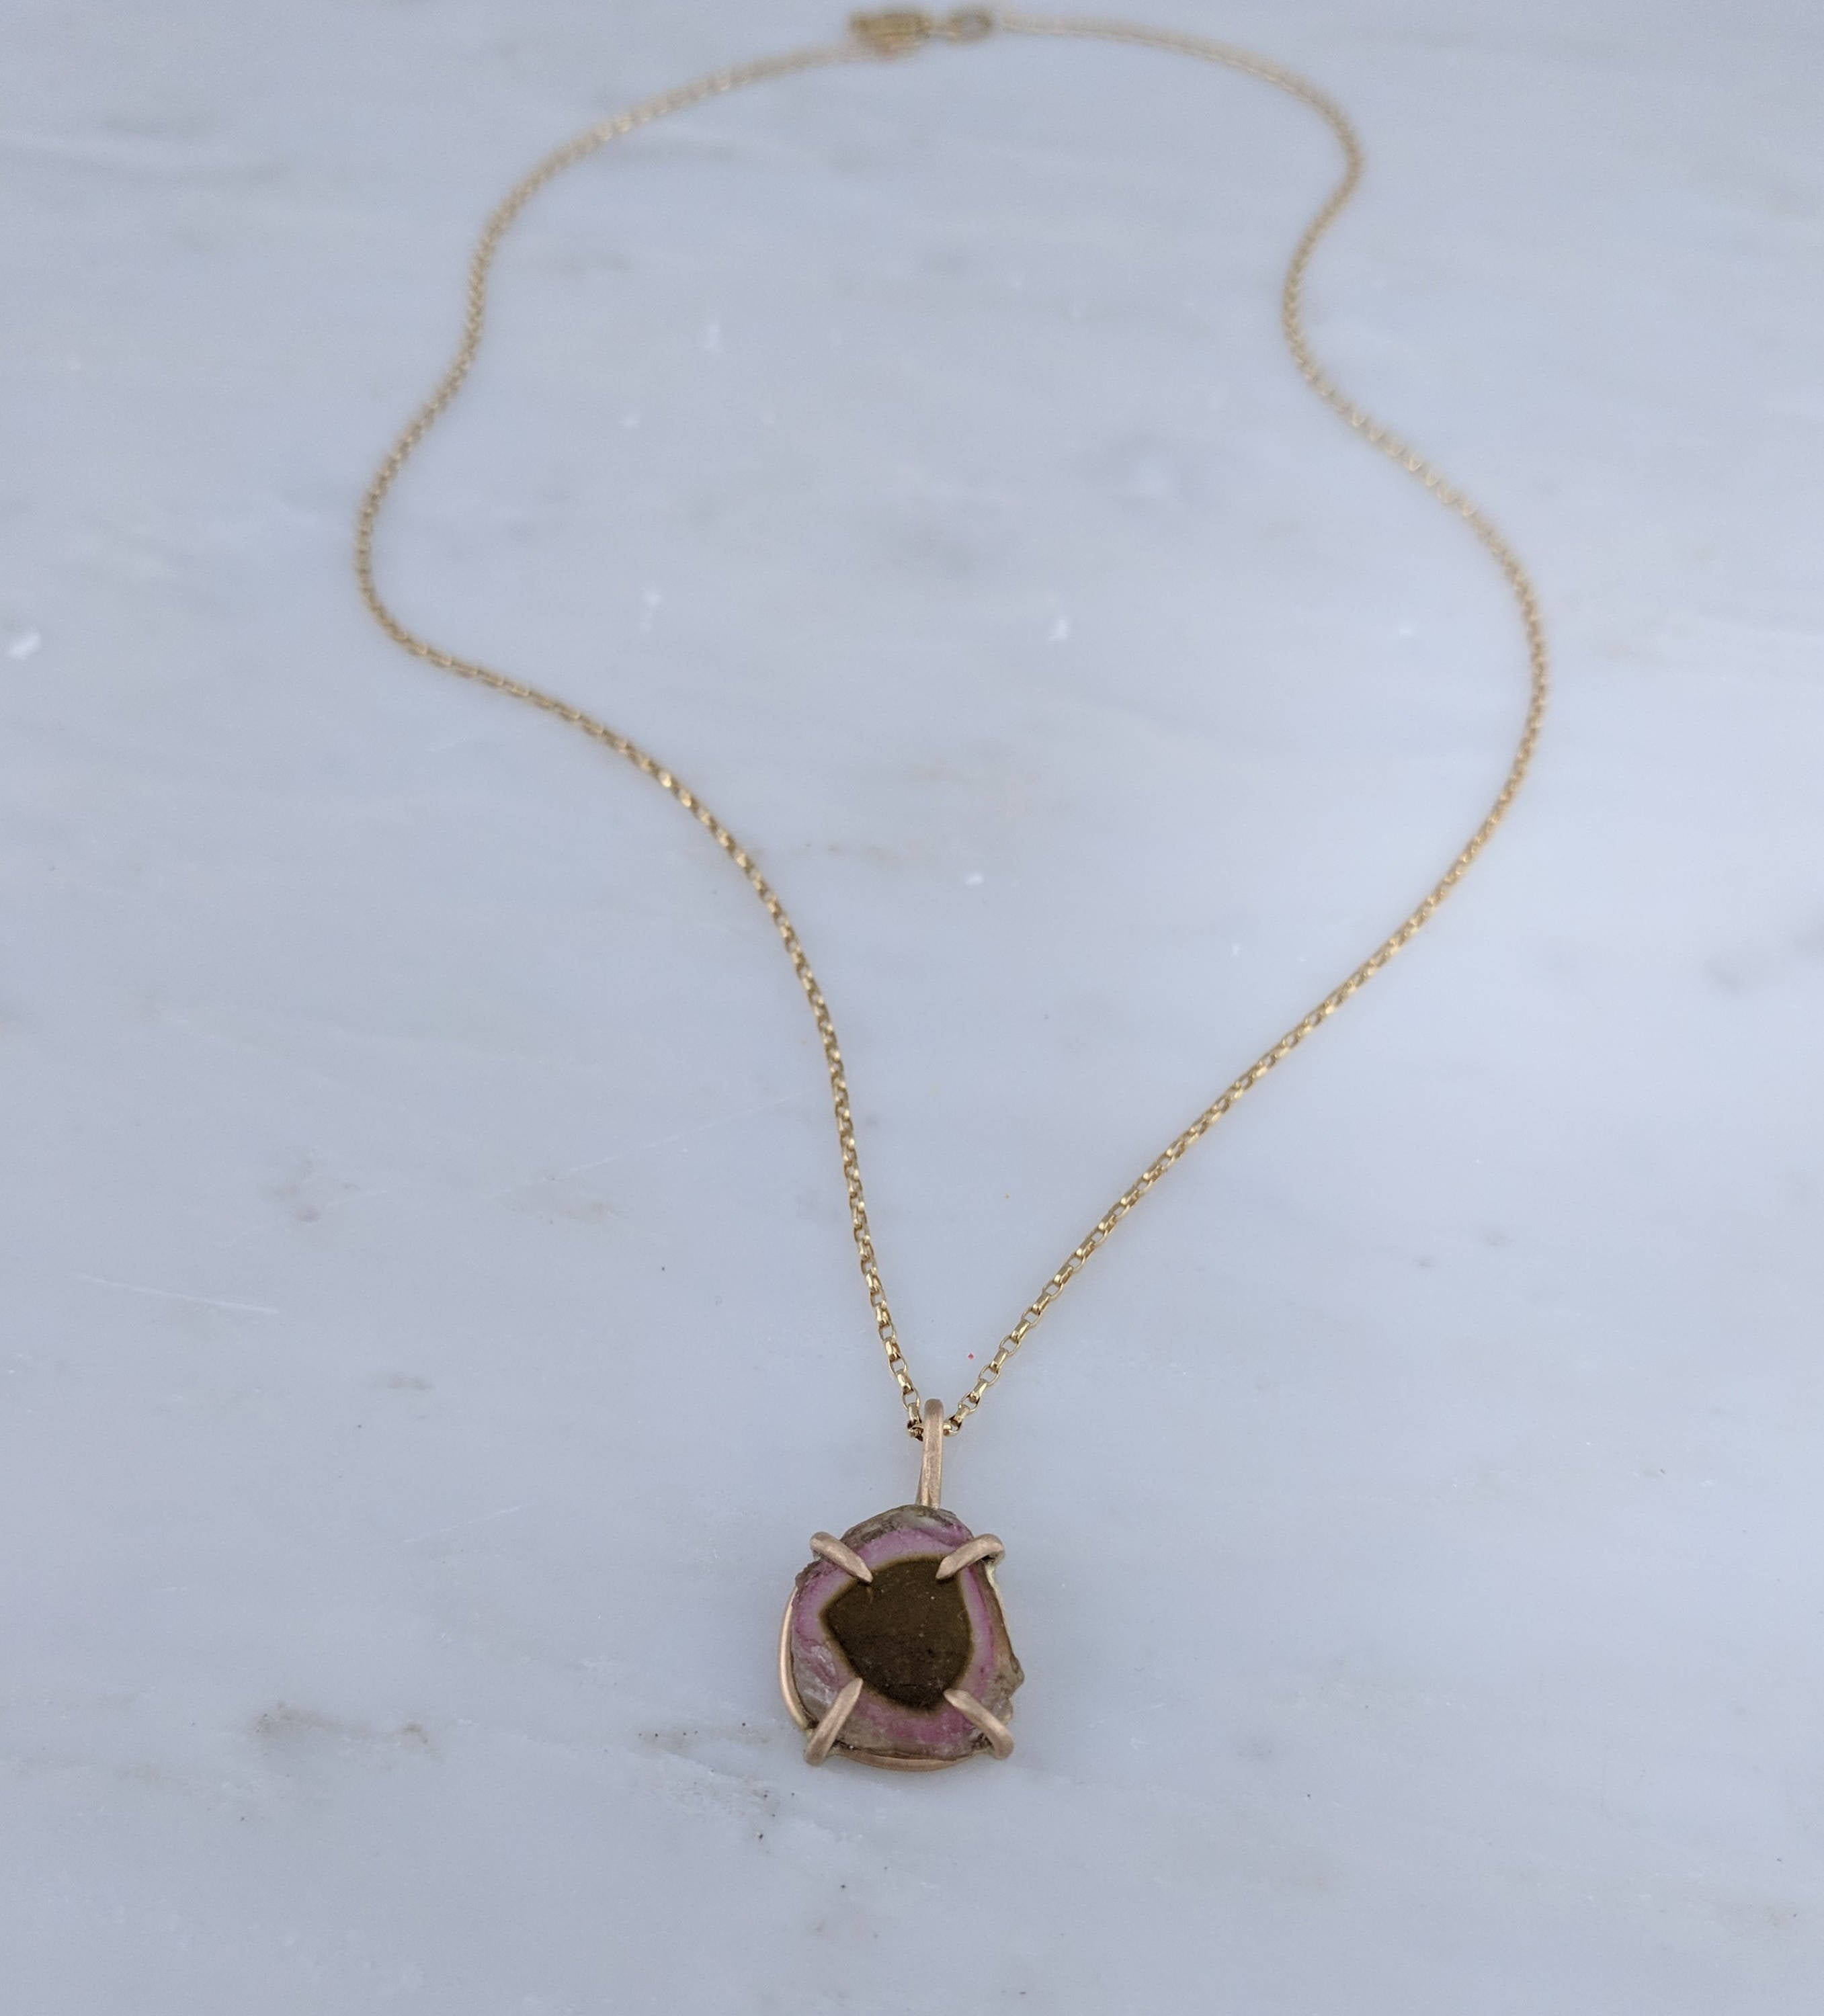 Watermelon Tourmaline Necklace in 14K Gold